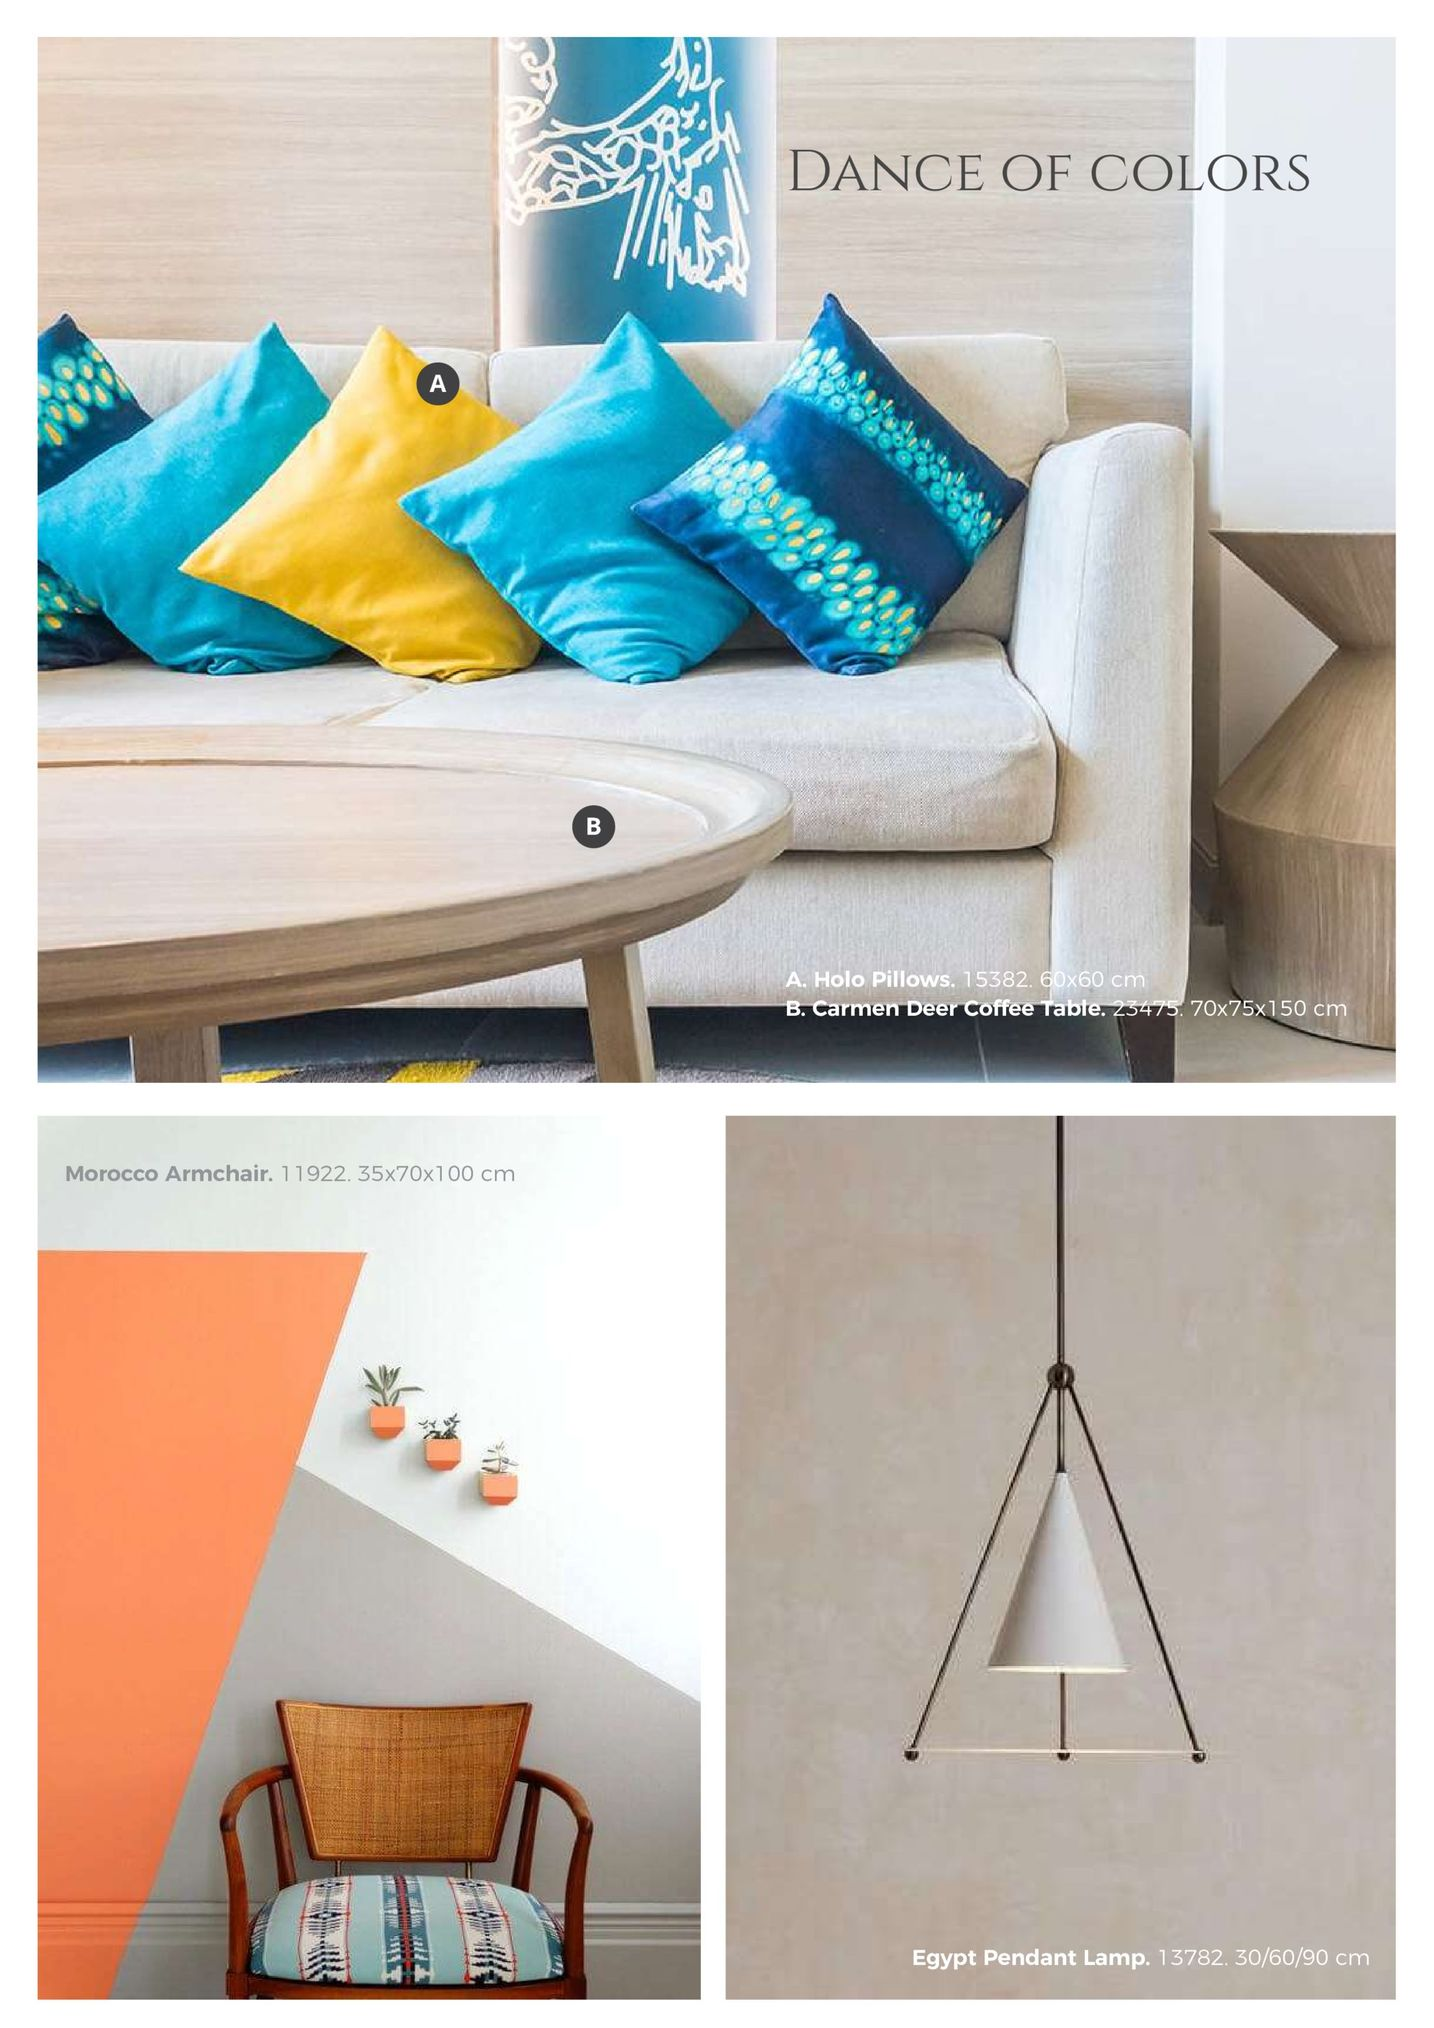 dance of colors a. holo pillows, 15382, 0x60 c men deer coffee tab 70x75x150 cm morocco armchair. 11922. 35x70x100 cm egypt pendant lamp. 13782. 30/60/90 cm